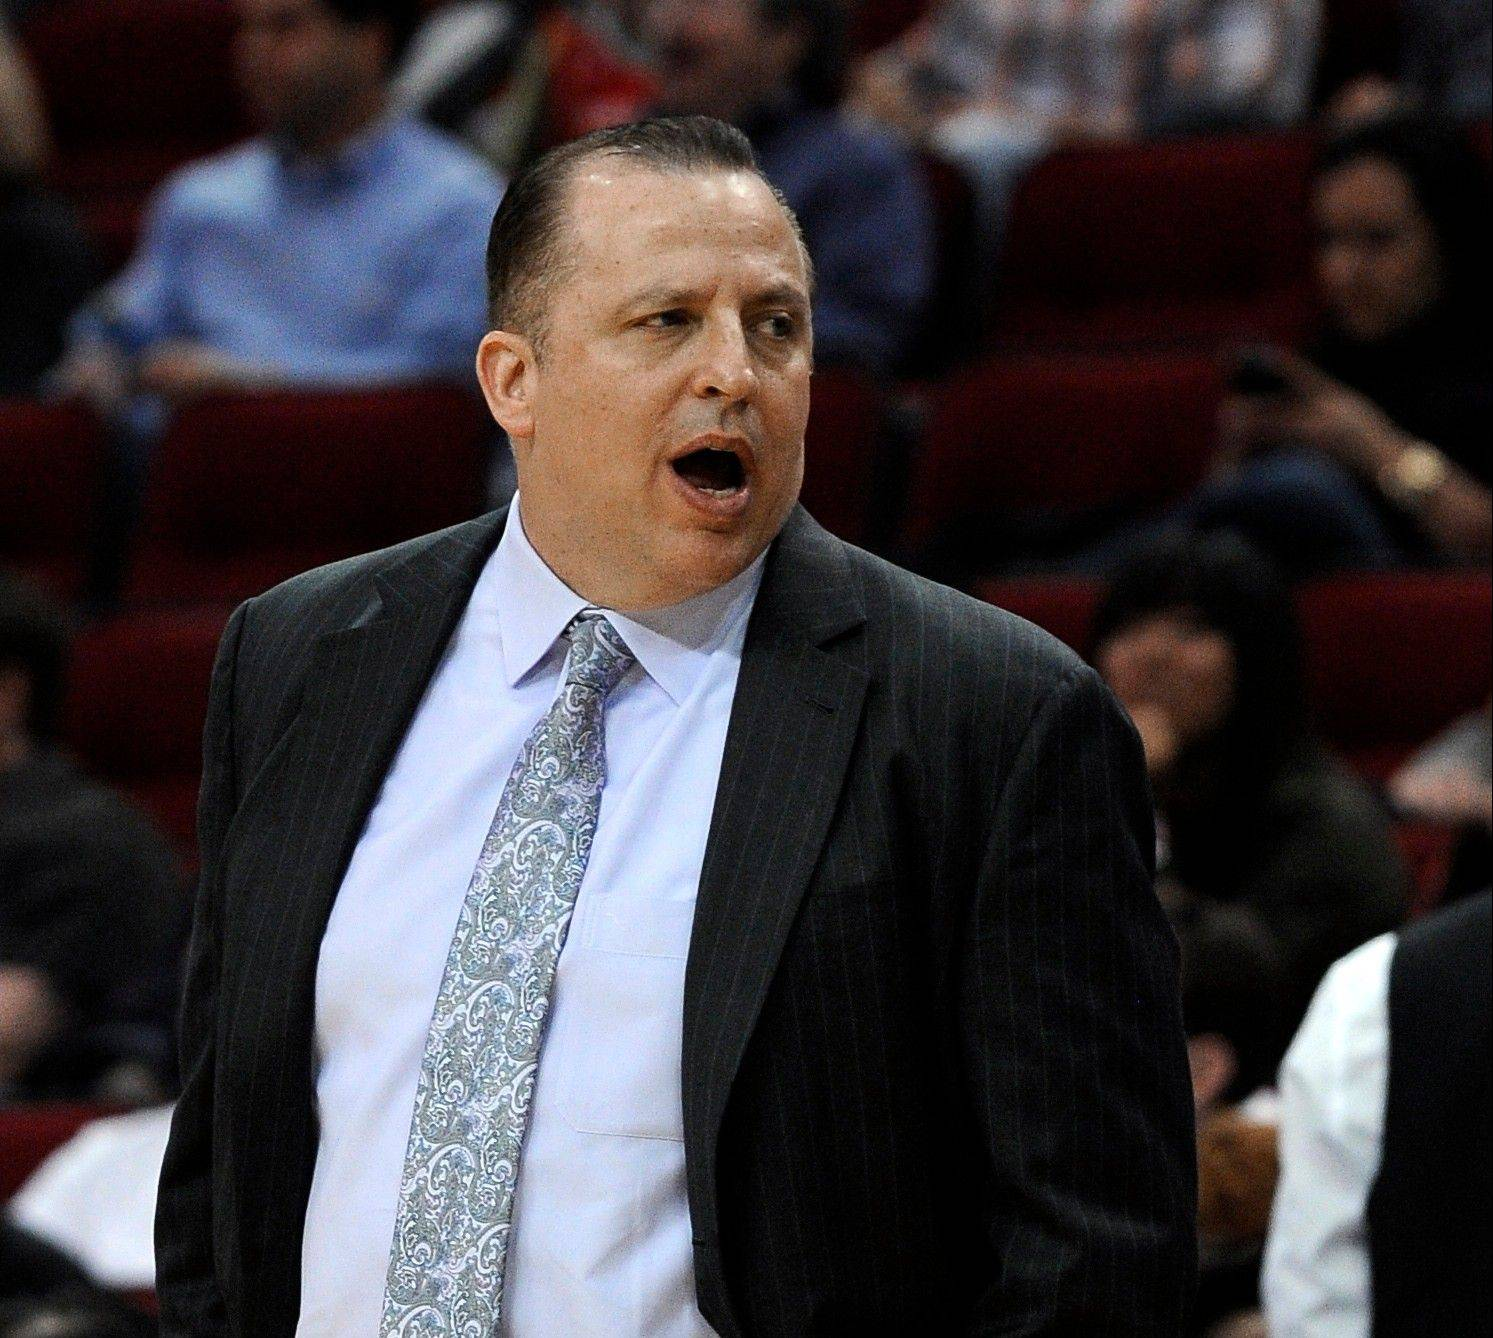 Coach Tom Thibodeau watched the Bulls lose their third straight game Wednesday night, the first time that's happened during his tenure with the Bulls.